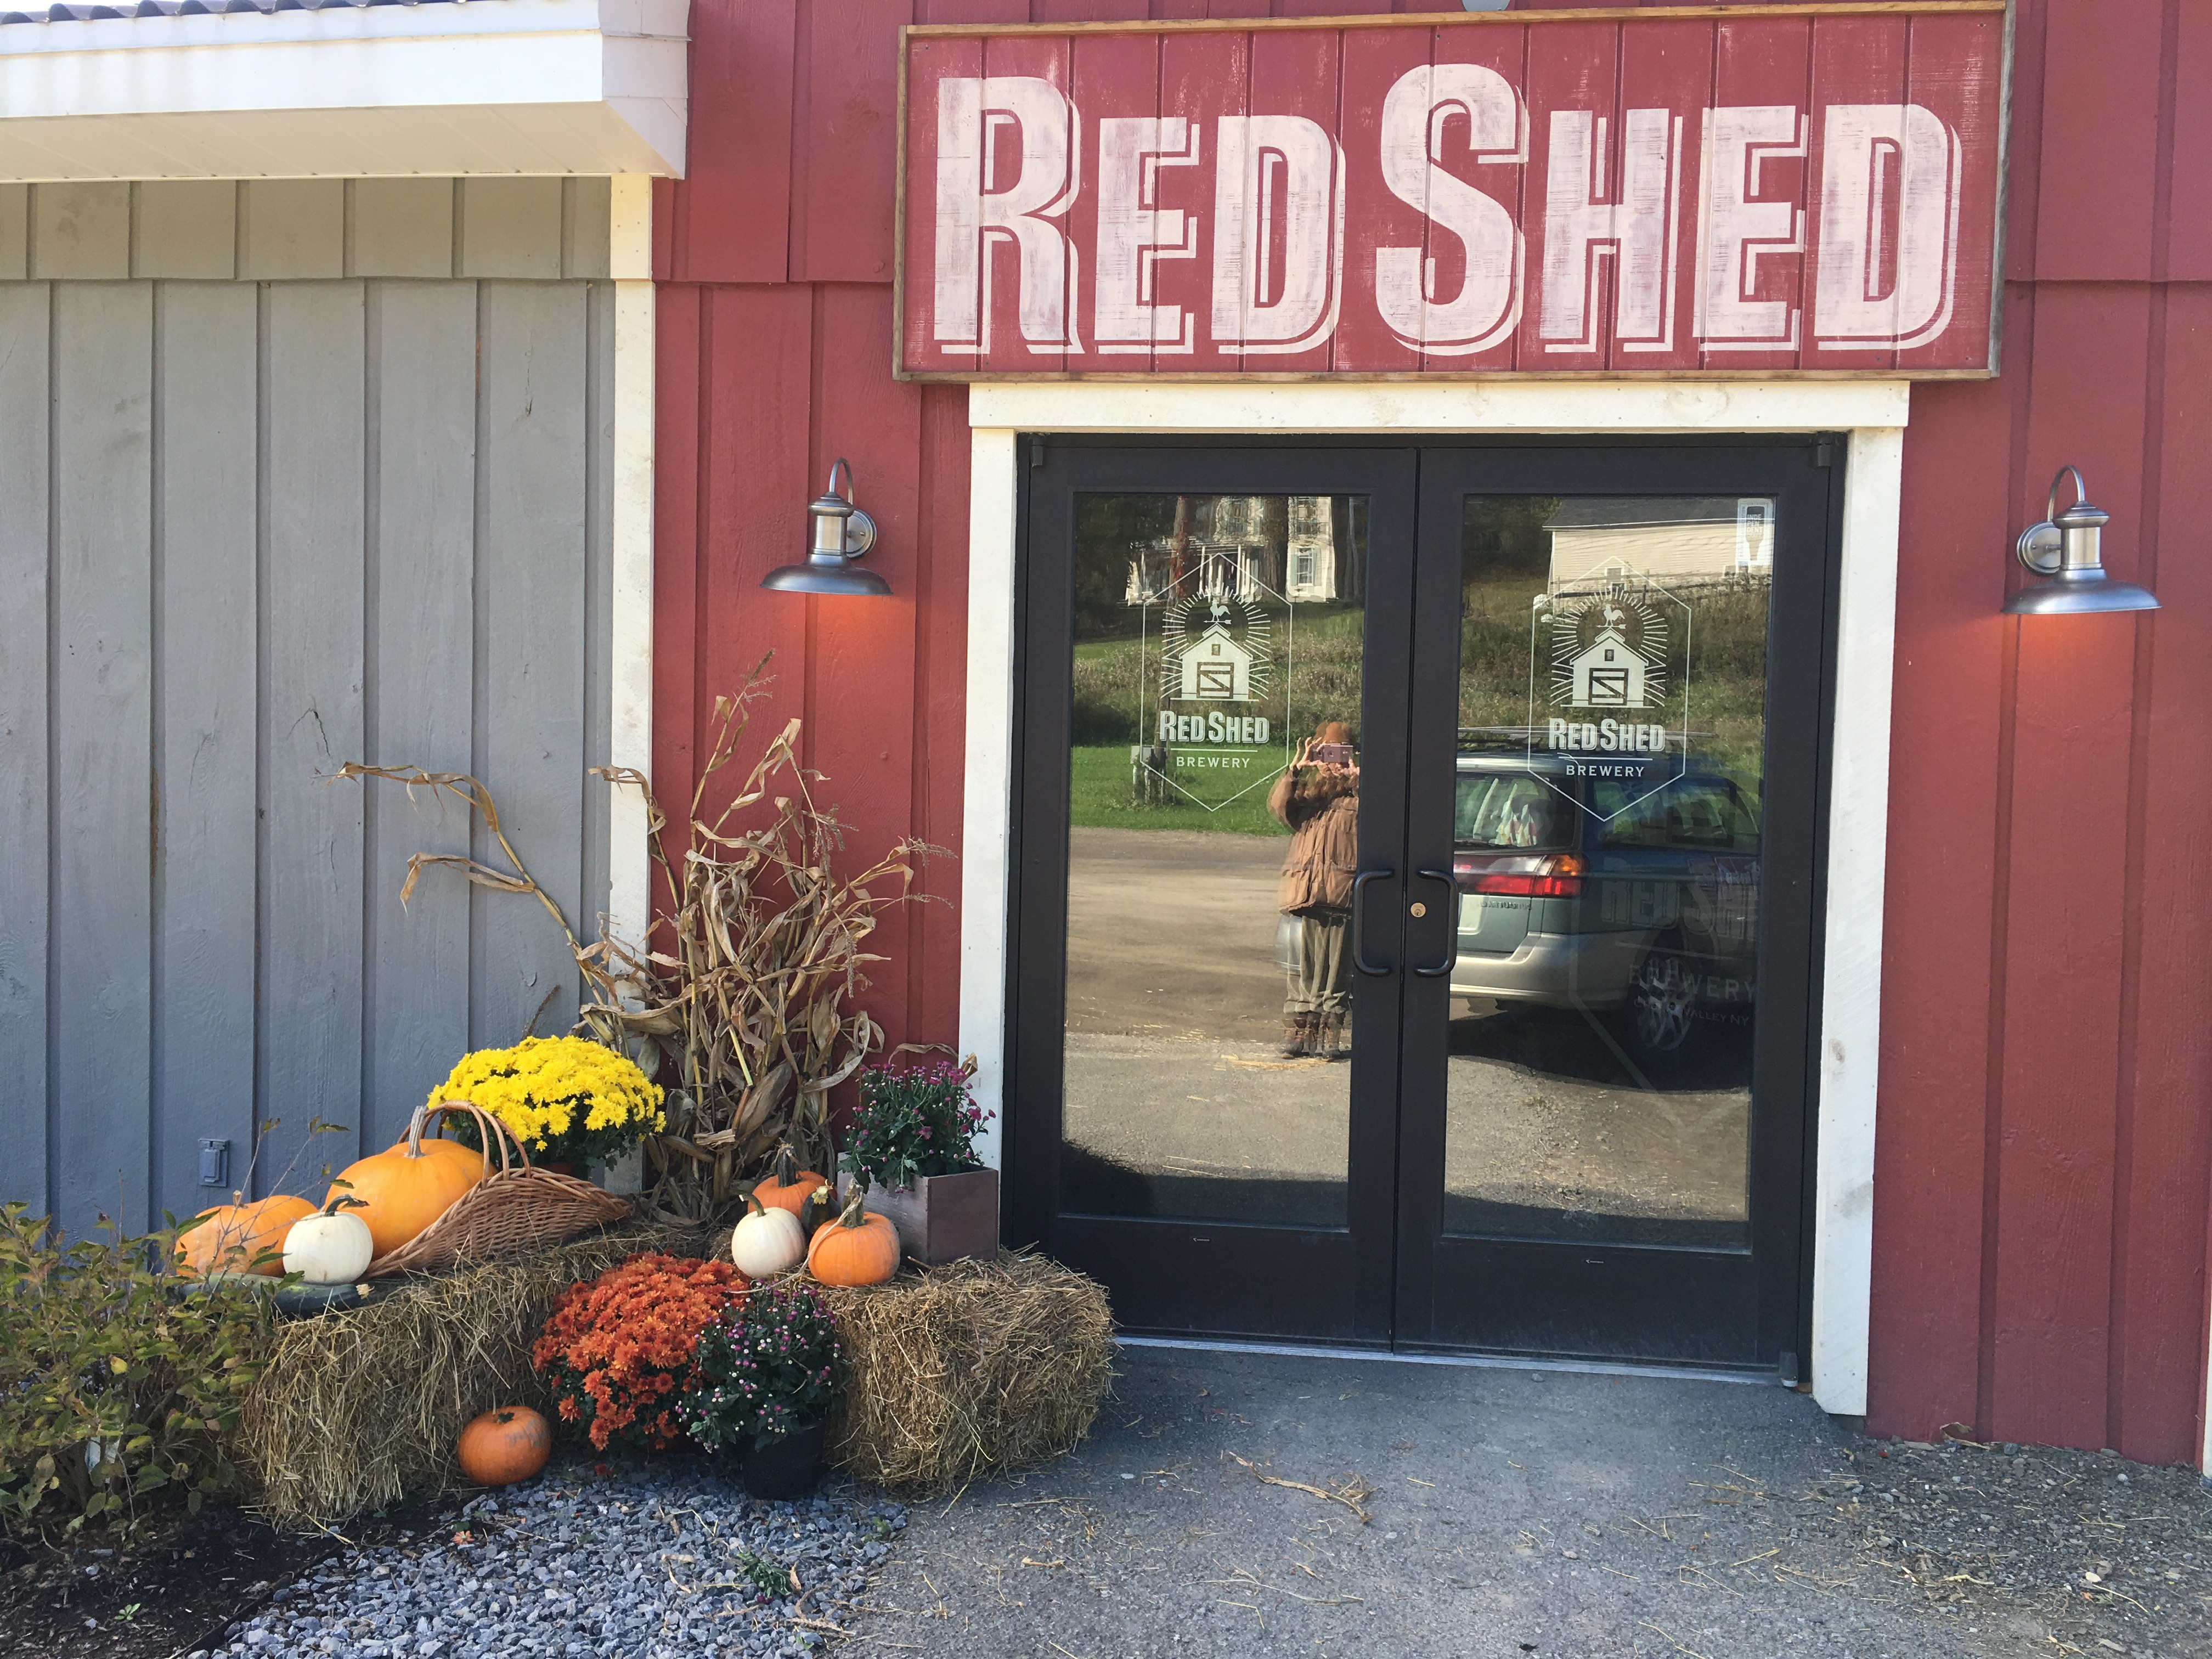 Red Shed Brewery image 1